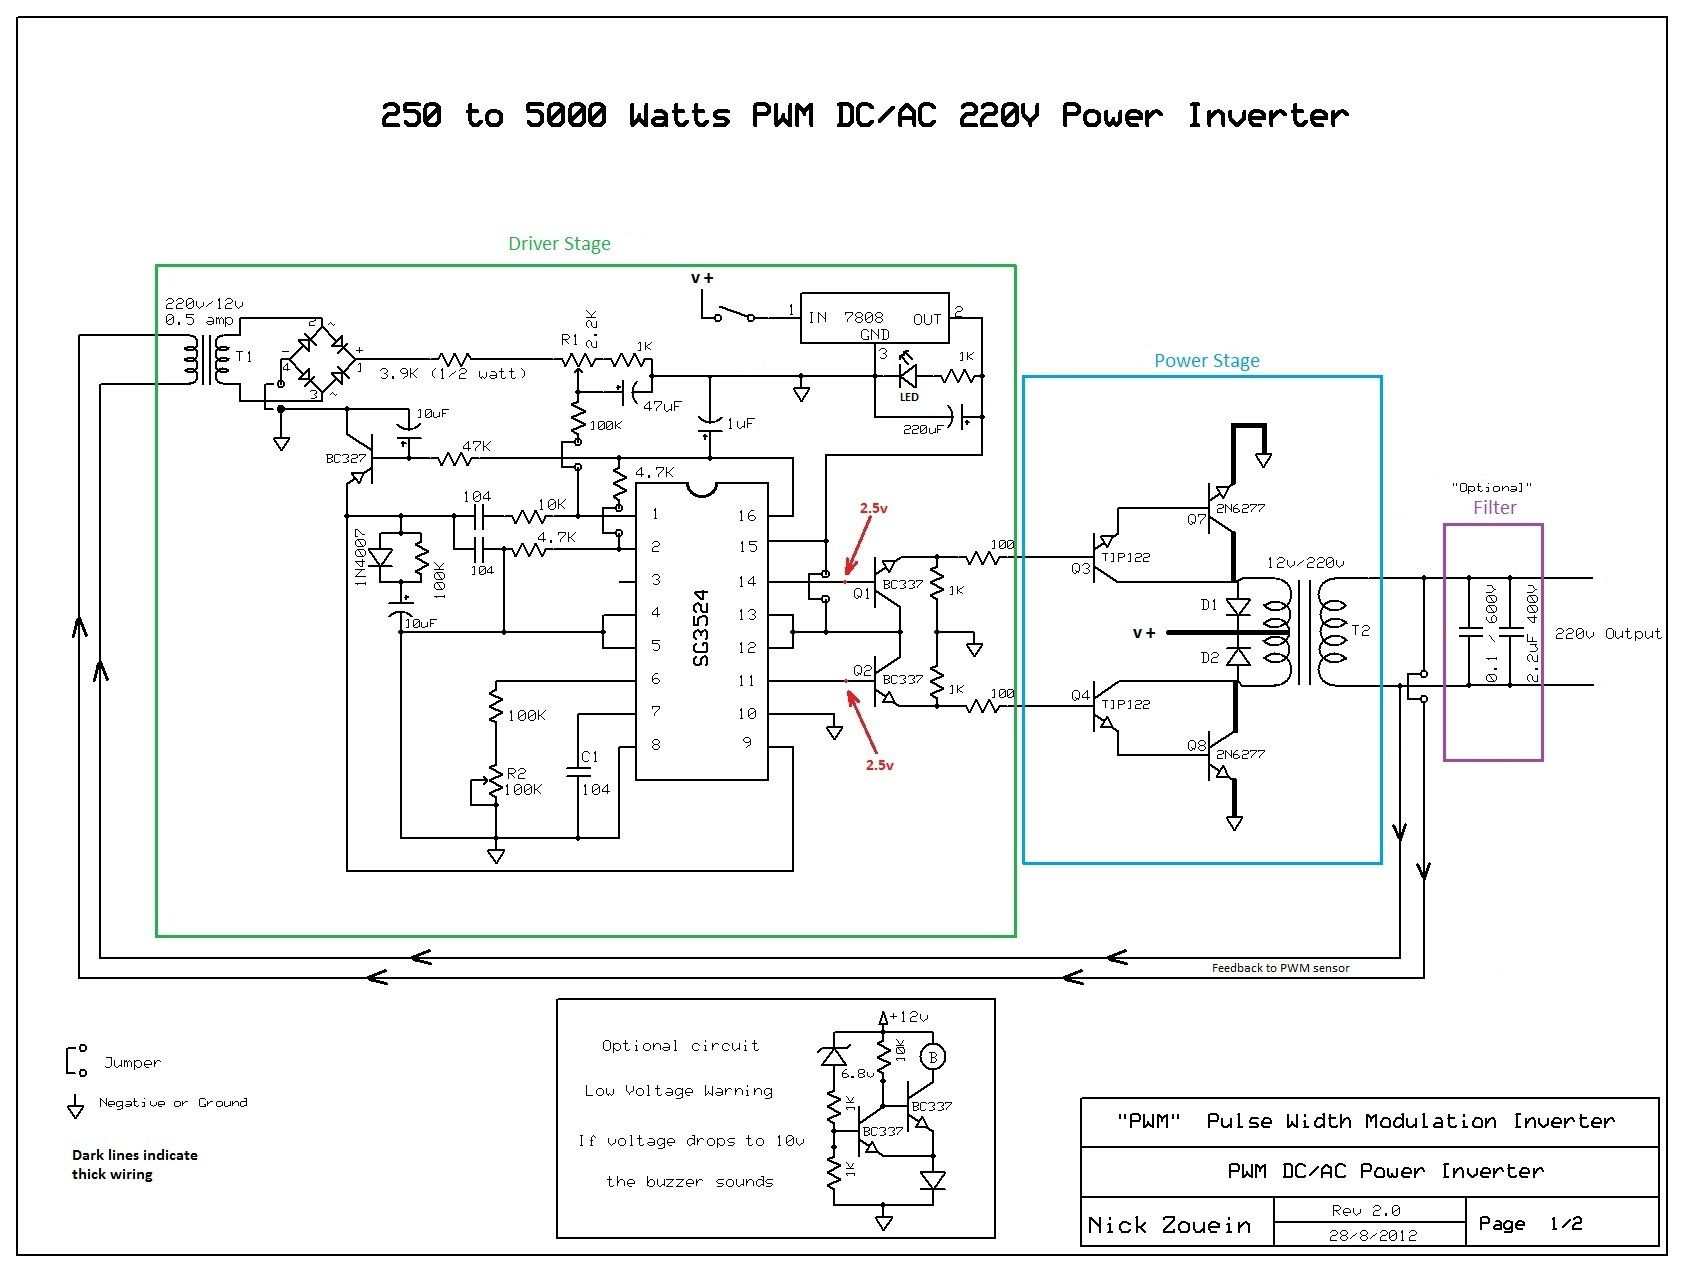 Inverter 12v To 220v Schematics Free Electronic Circuits Diagram New Fet Audio Amp Circuit Bundadaffacom Transforming A 250w 5000w Electronics Pinterest Rh Com